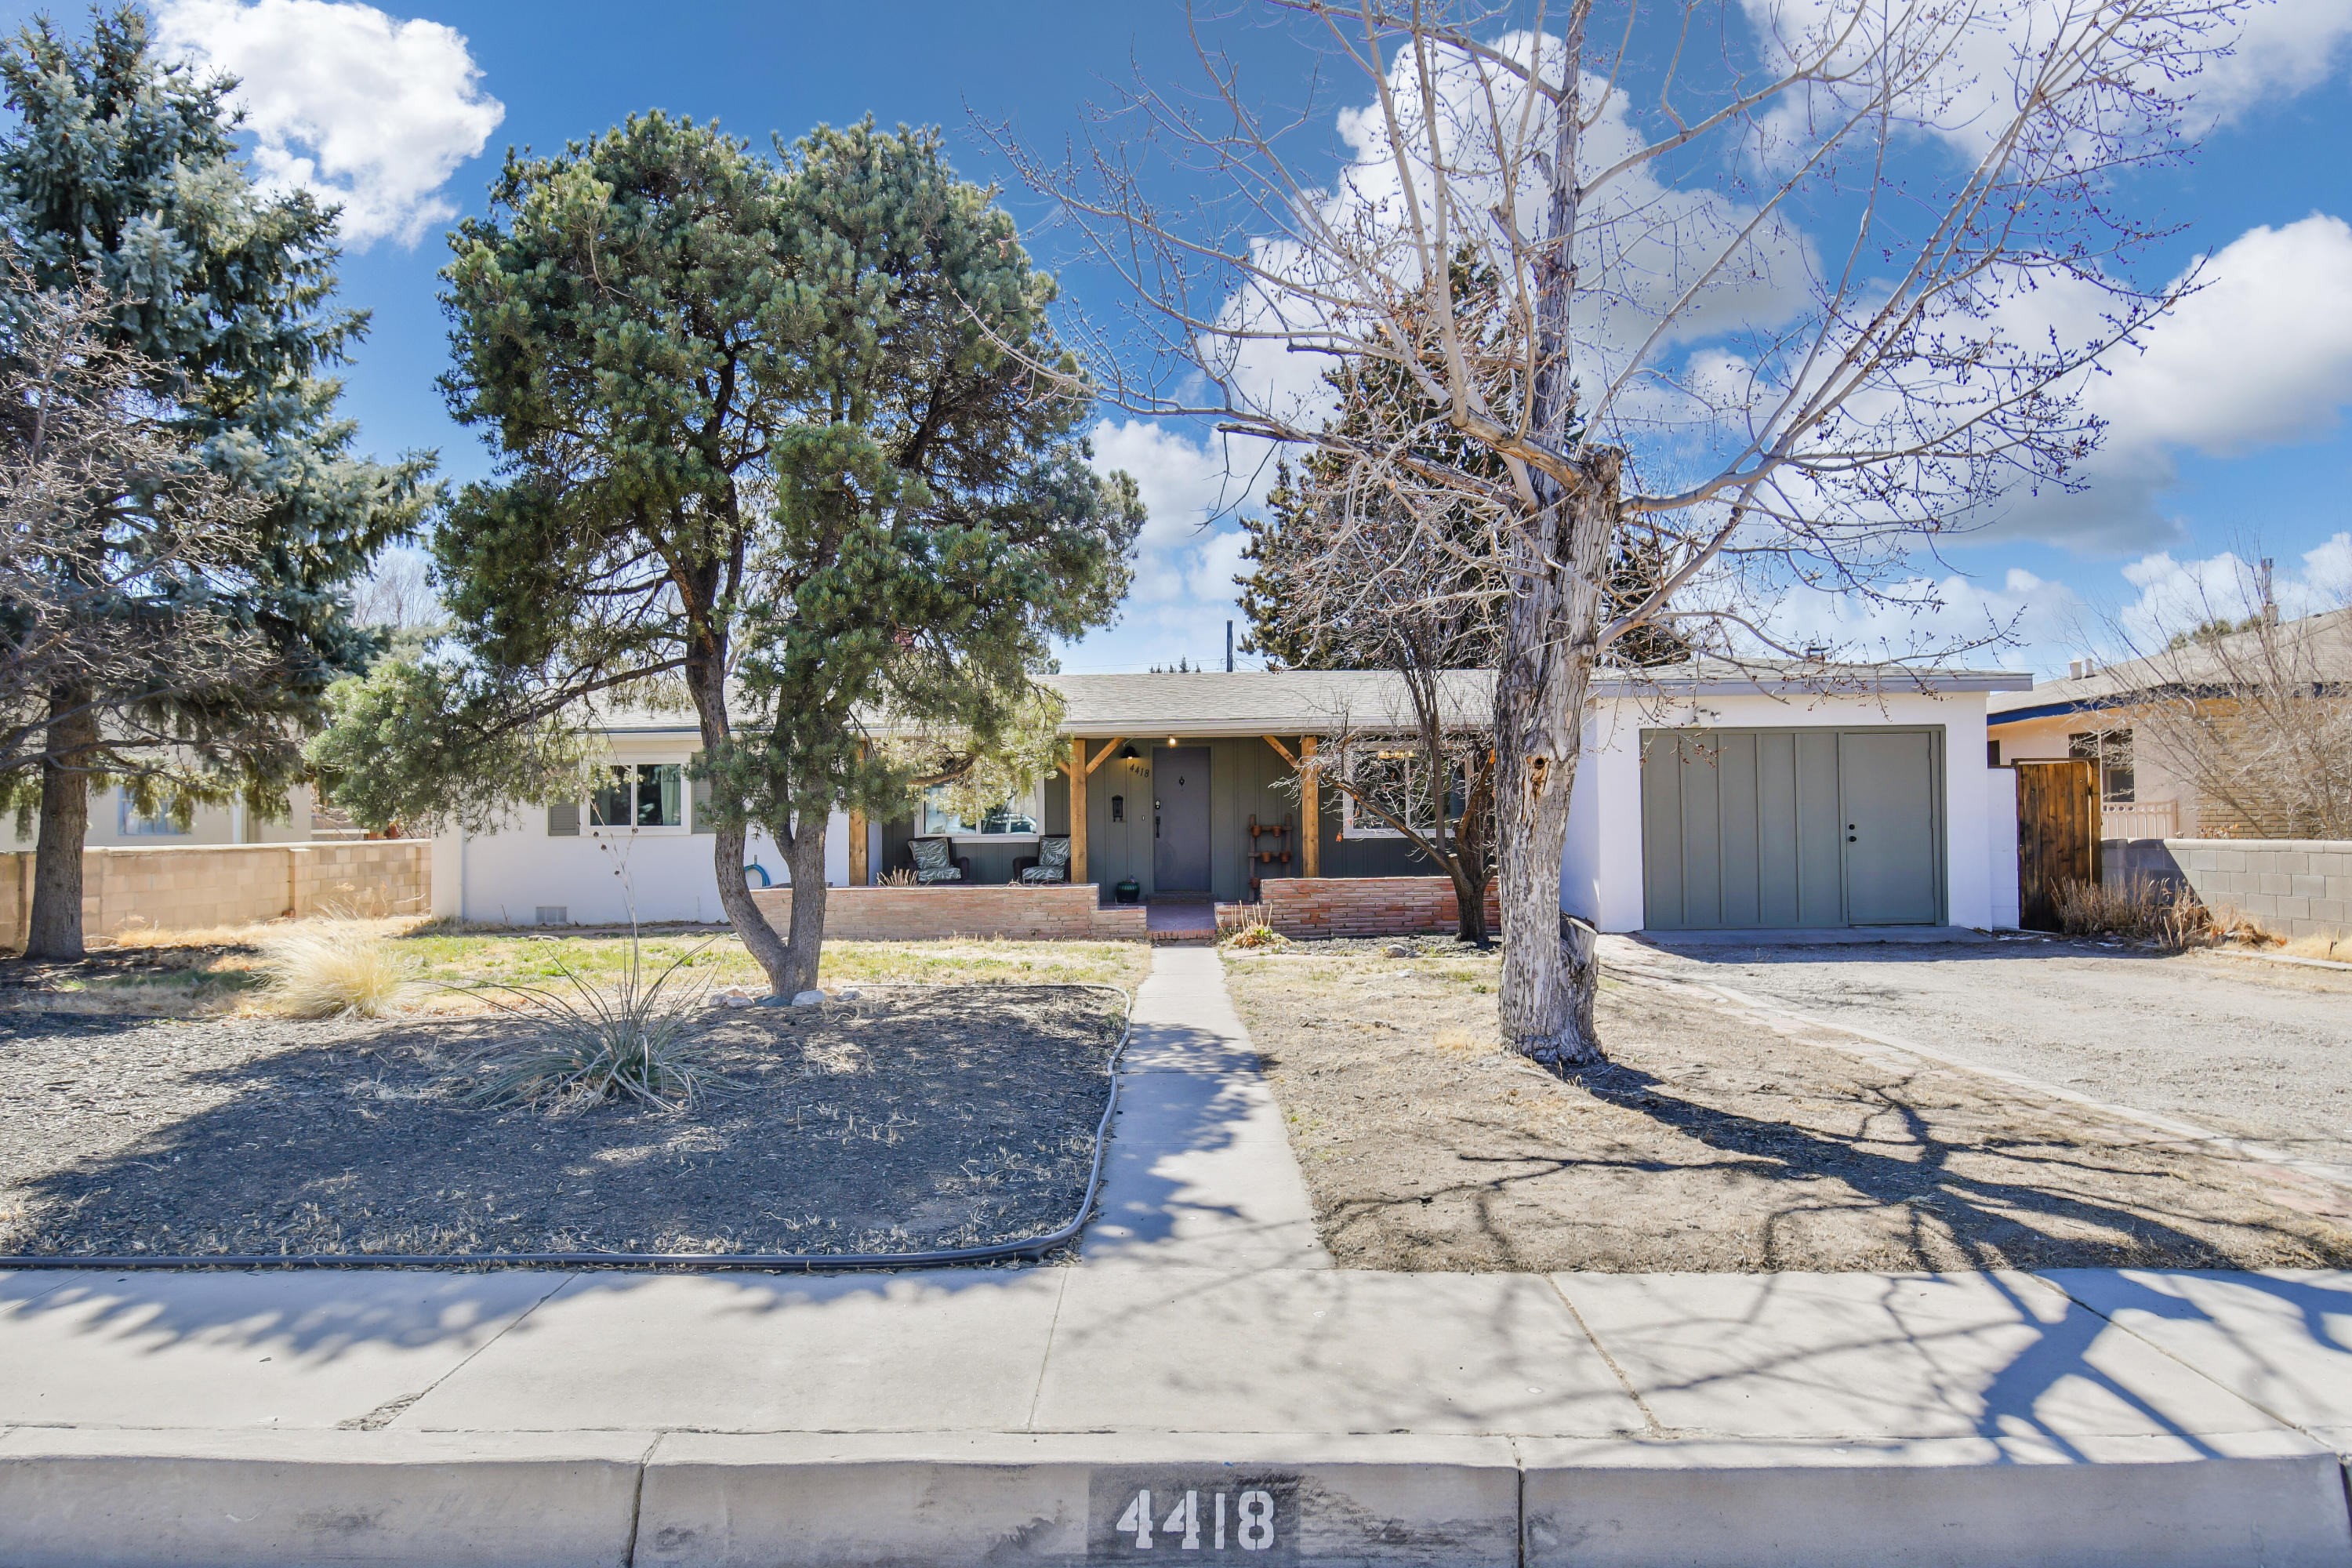 Wonderful Opportunity in Highly Sought after The Altura Area... Just a two doors from Campo Manana Park and Prado Del Sol Park... Beautiful Mature Neighborhood... Location Location Location! Re-Mastered Open Floorplan, Kitchen with New stainless appliances, new cabinets, new granite countertops, farm sink with new faucet, new LED lighting and a custom built-in eating area. Home features new laminate wood flooring, new paint and updated bathrooms. Extra large backyard for entertaining or just relaxing with an inground gunite pool and screened in covered patio.  Yards also feature mature landscaping and a backyard storage shed.  This home is tucked away in a quiet neighborhood yet features easy access to Nob Hill, Altura Park, UNM and City Parks.